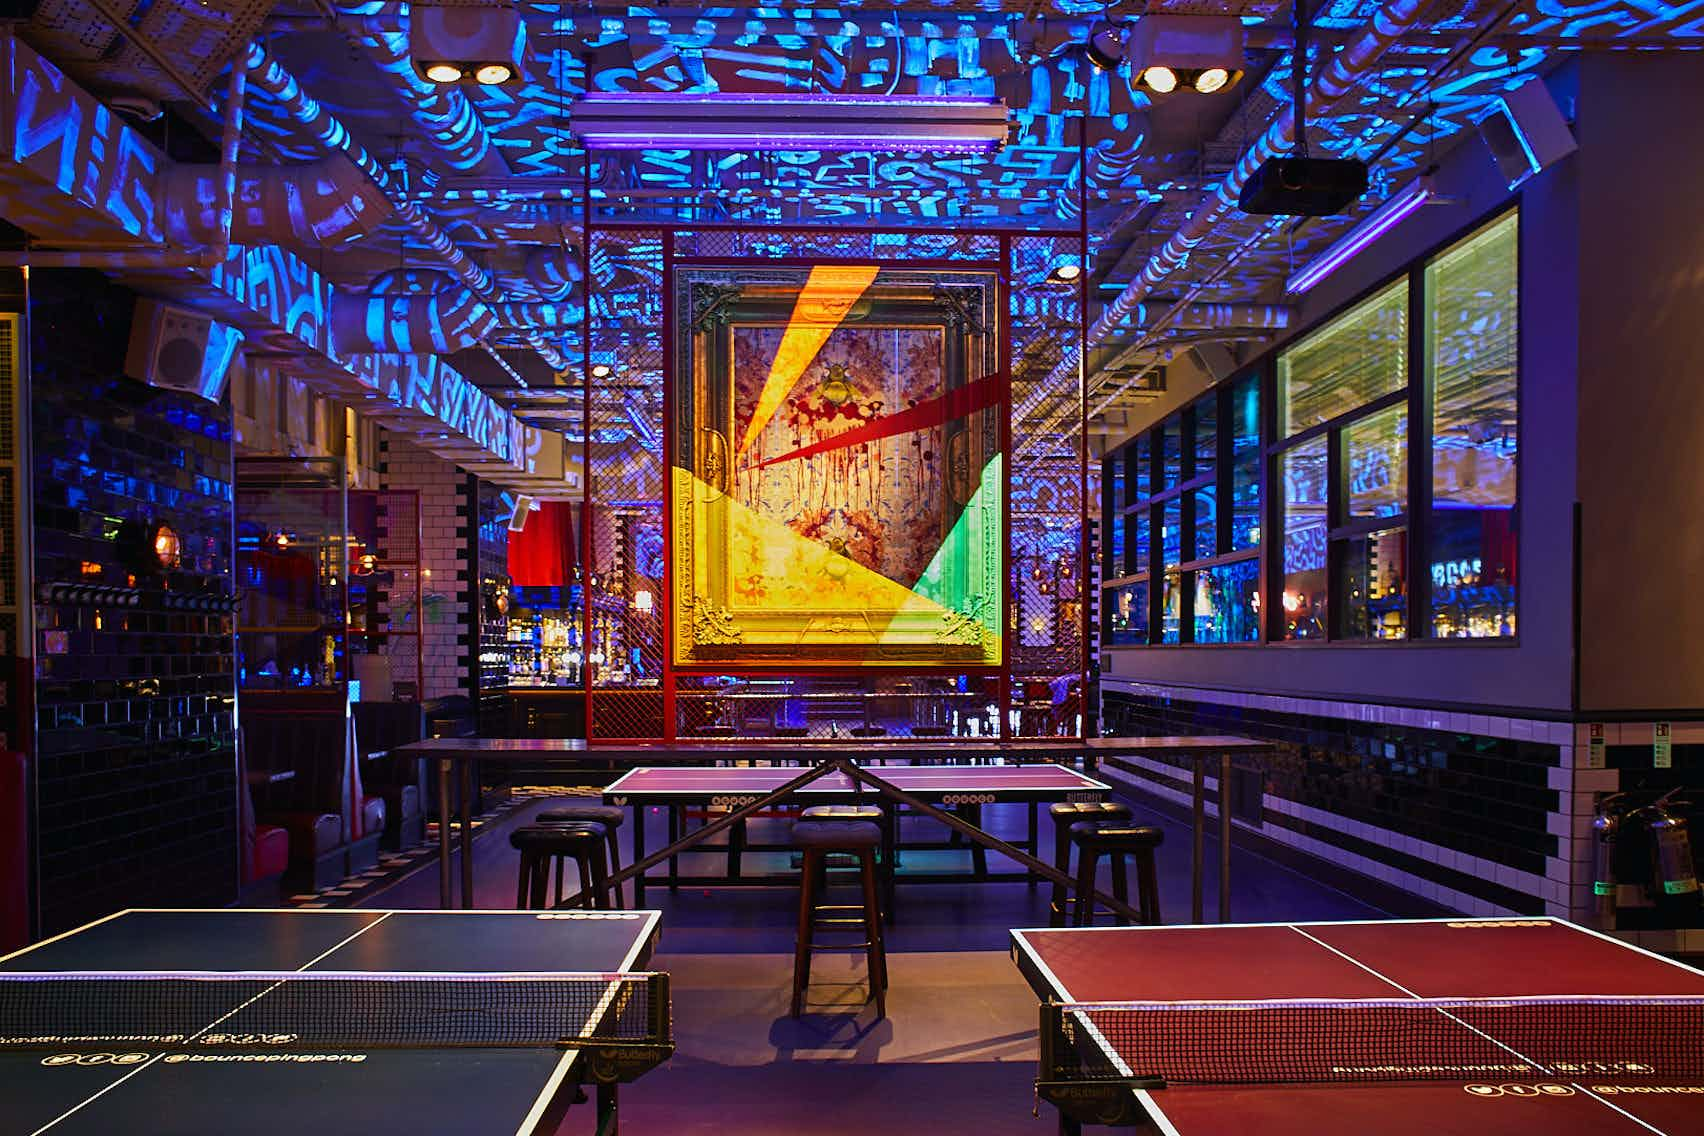 Exclusive Areas - The Gallery, Bounce, Farringdon - The Home of Ping Pong